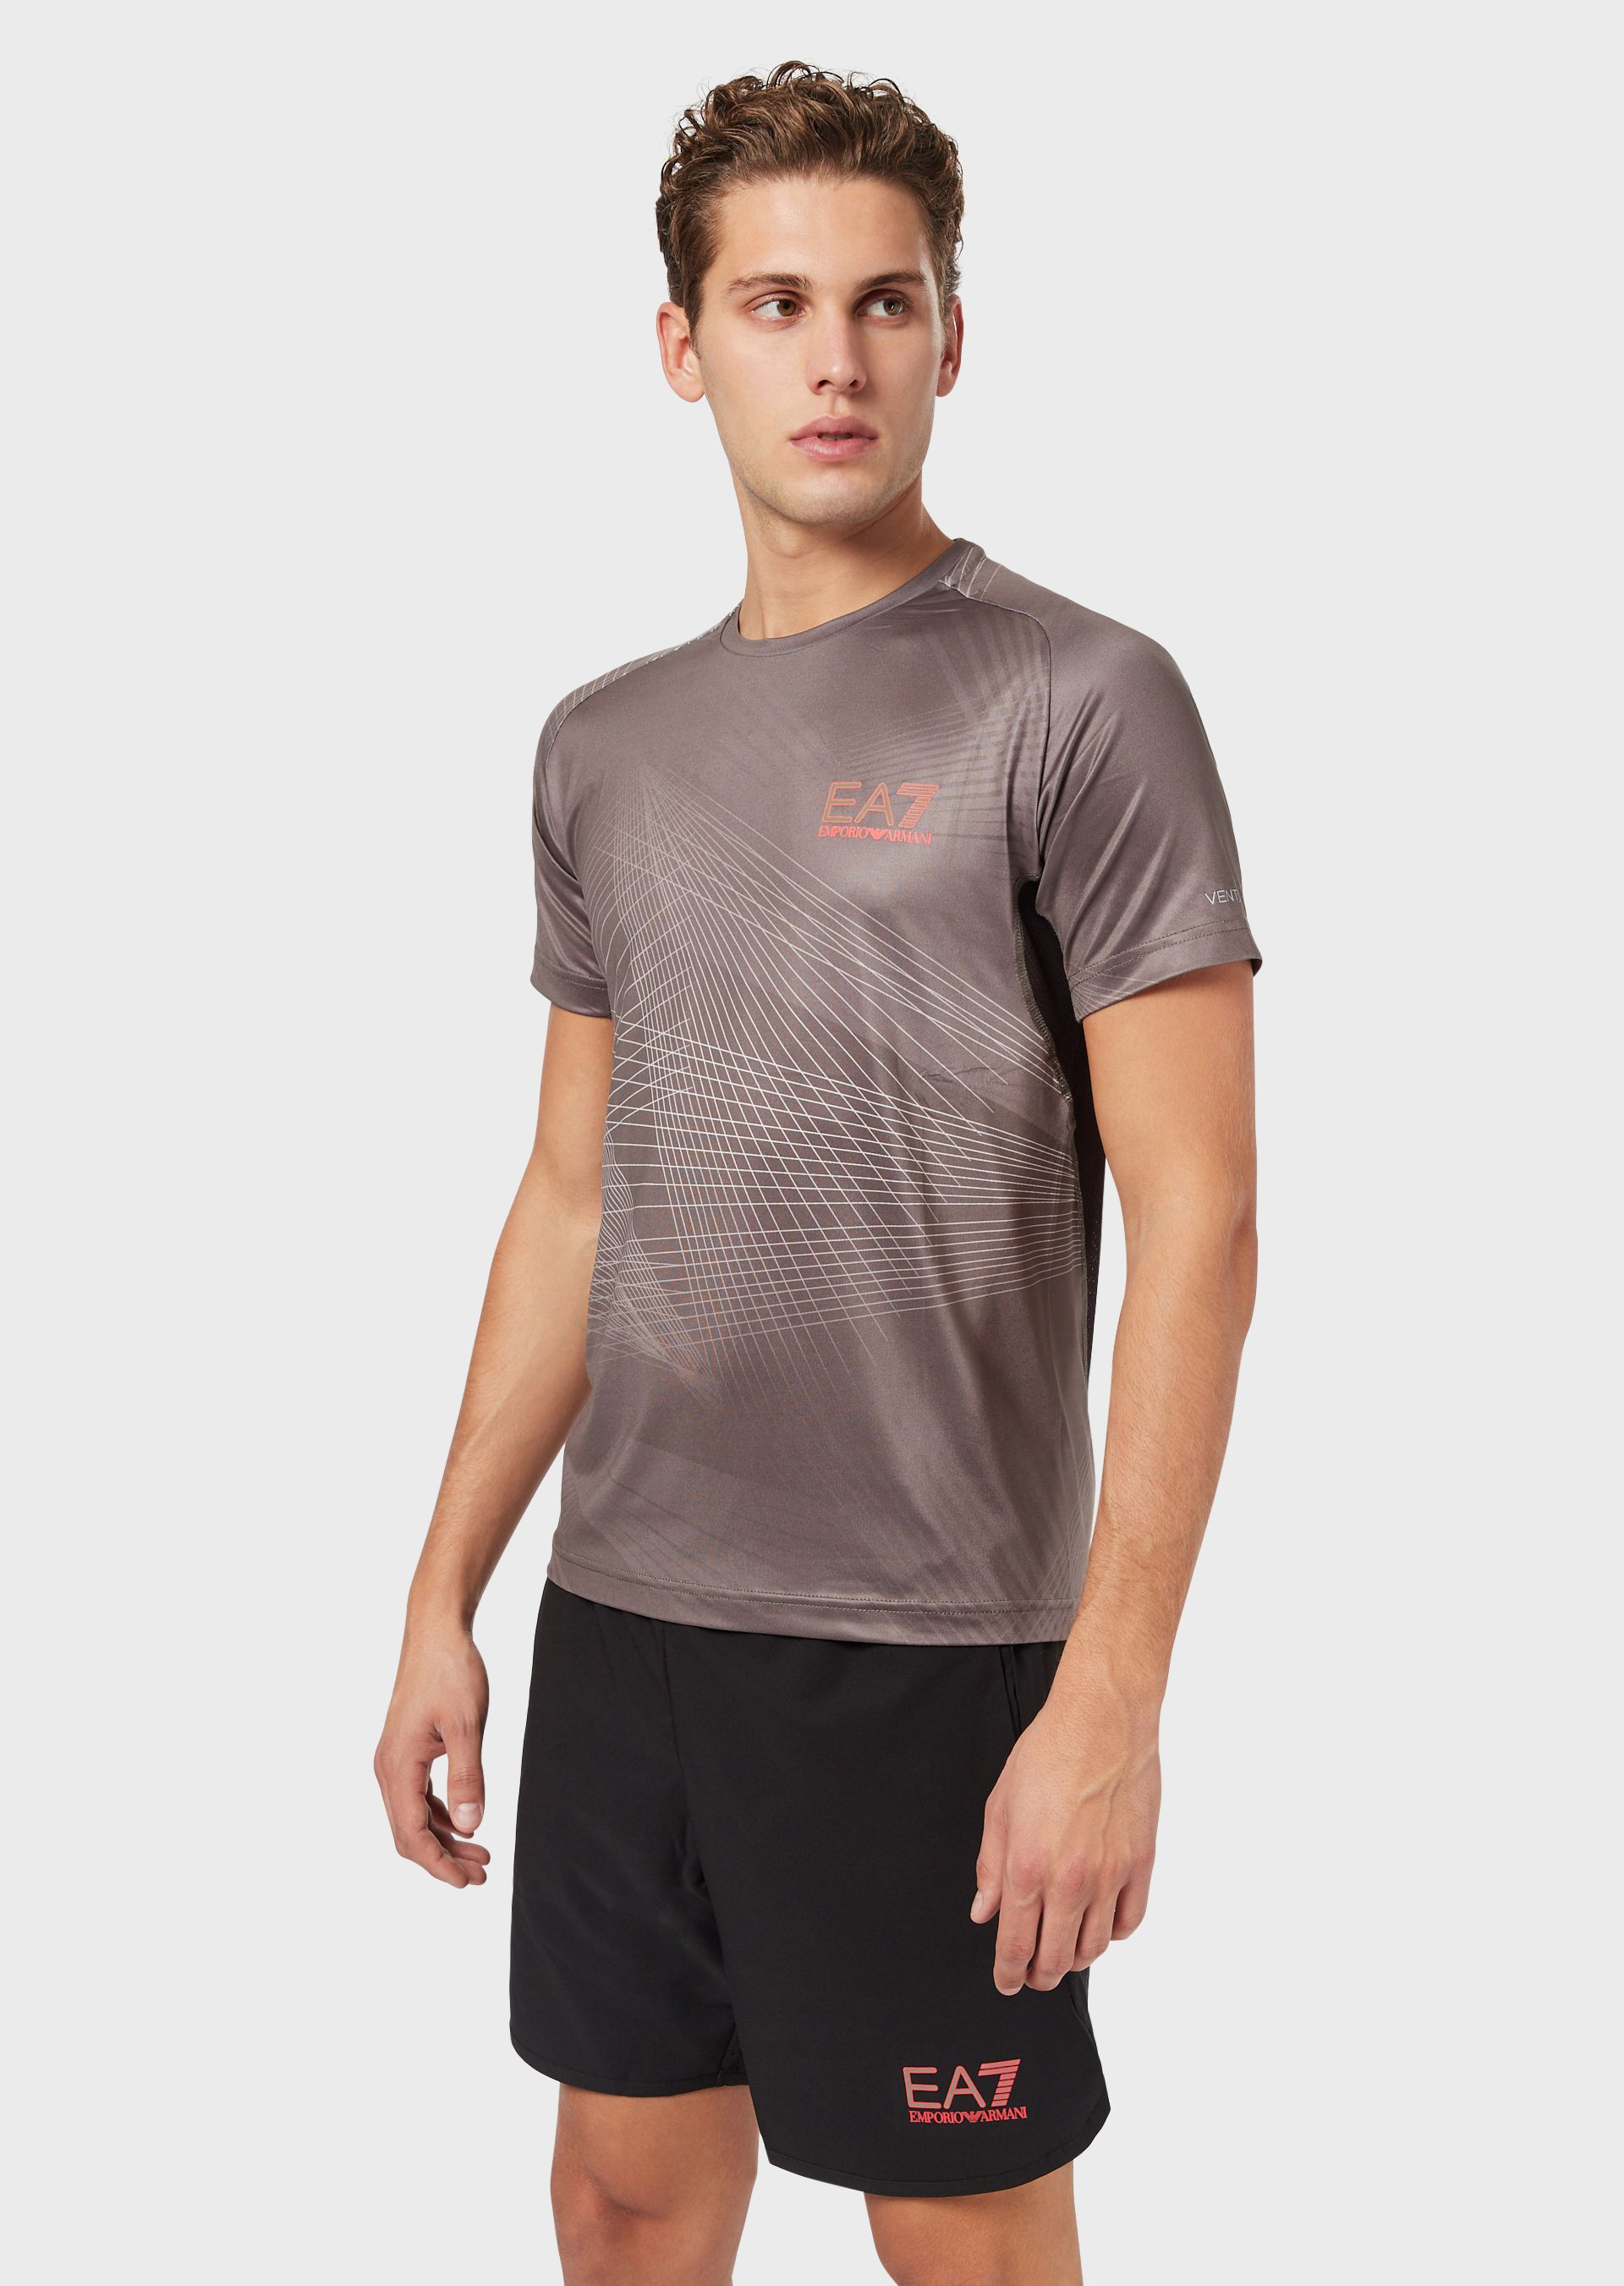 Emporio Armani T-Shirts - Item 12397273 In Taupe